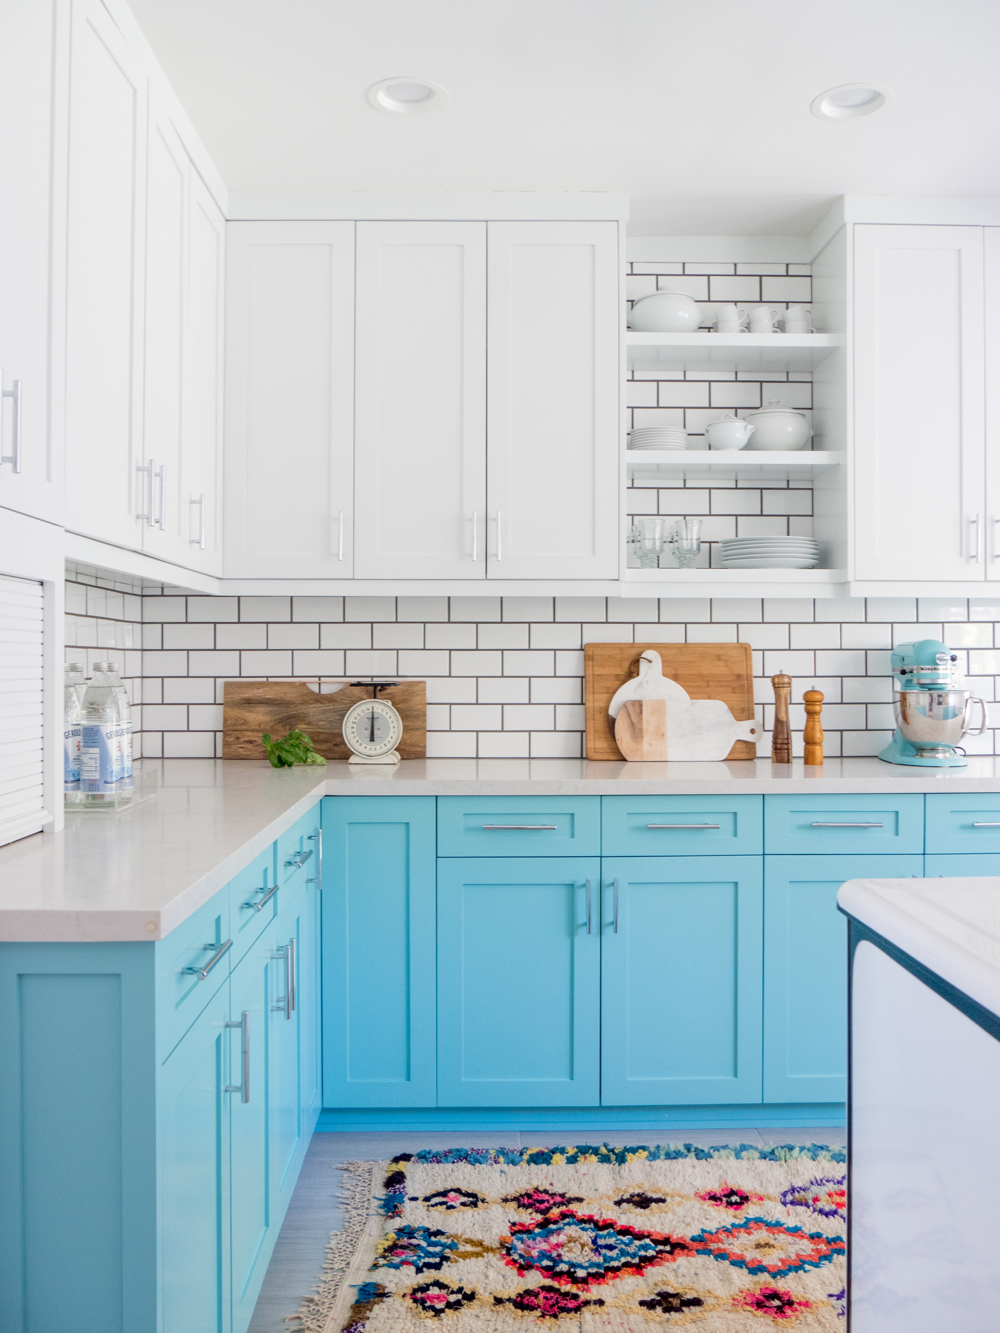 10 Beautiful Kitchen Cabinet Color Ideas That Can Enhance Your ...